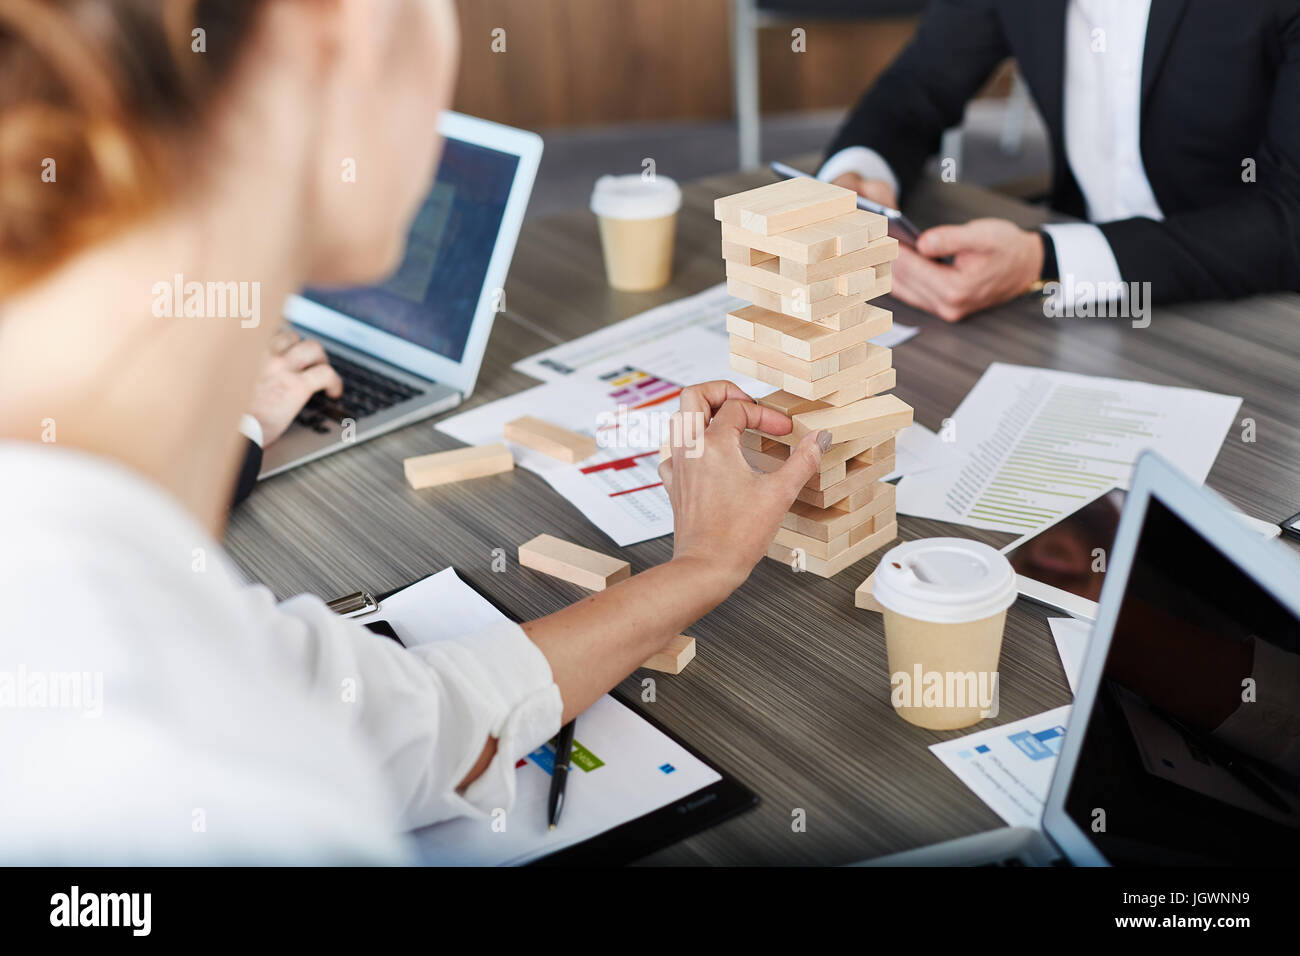 Team of business people build a wooden construction. concept of teamwork and partnership - Stock Image